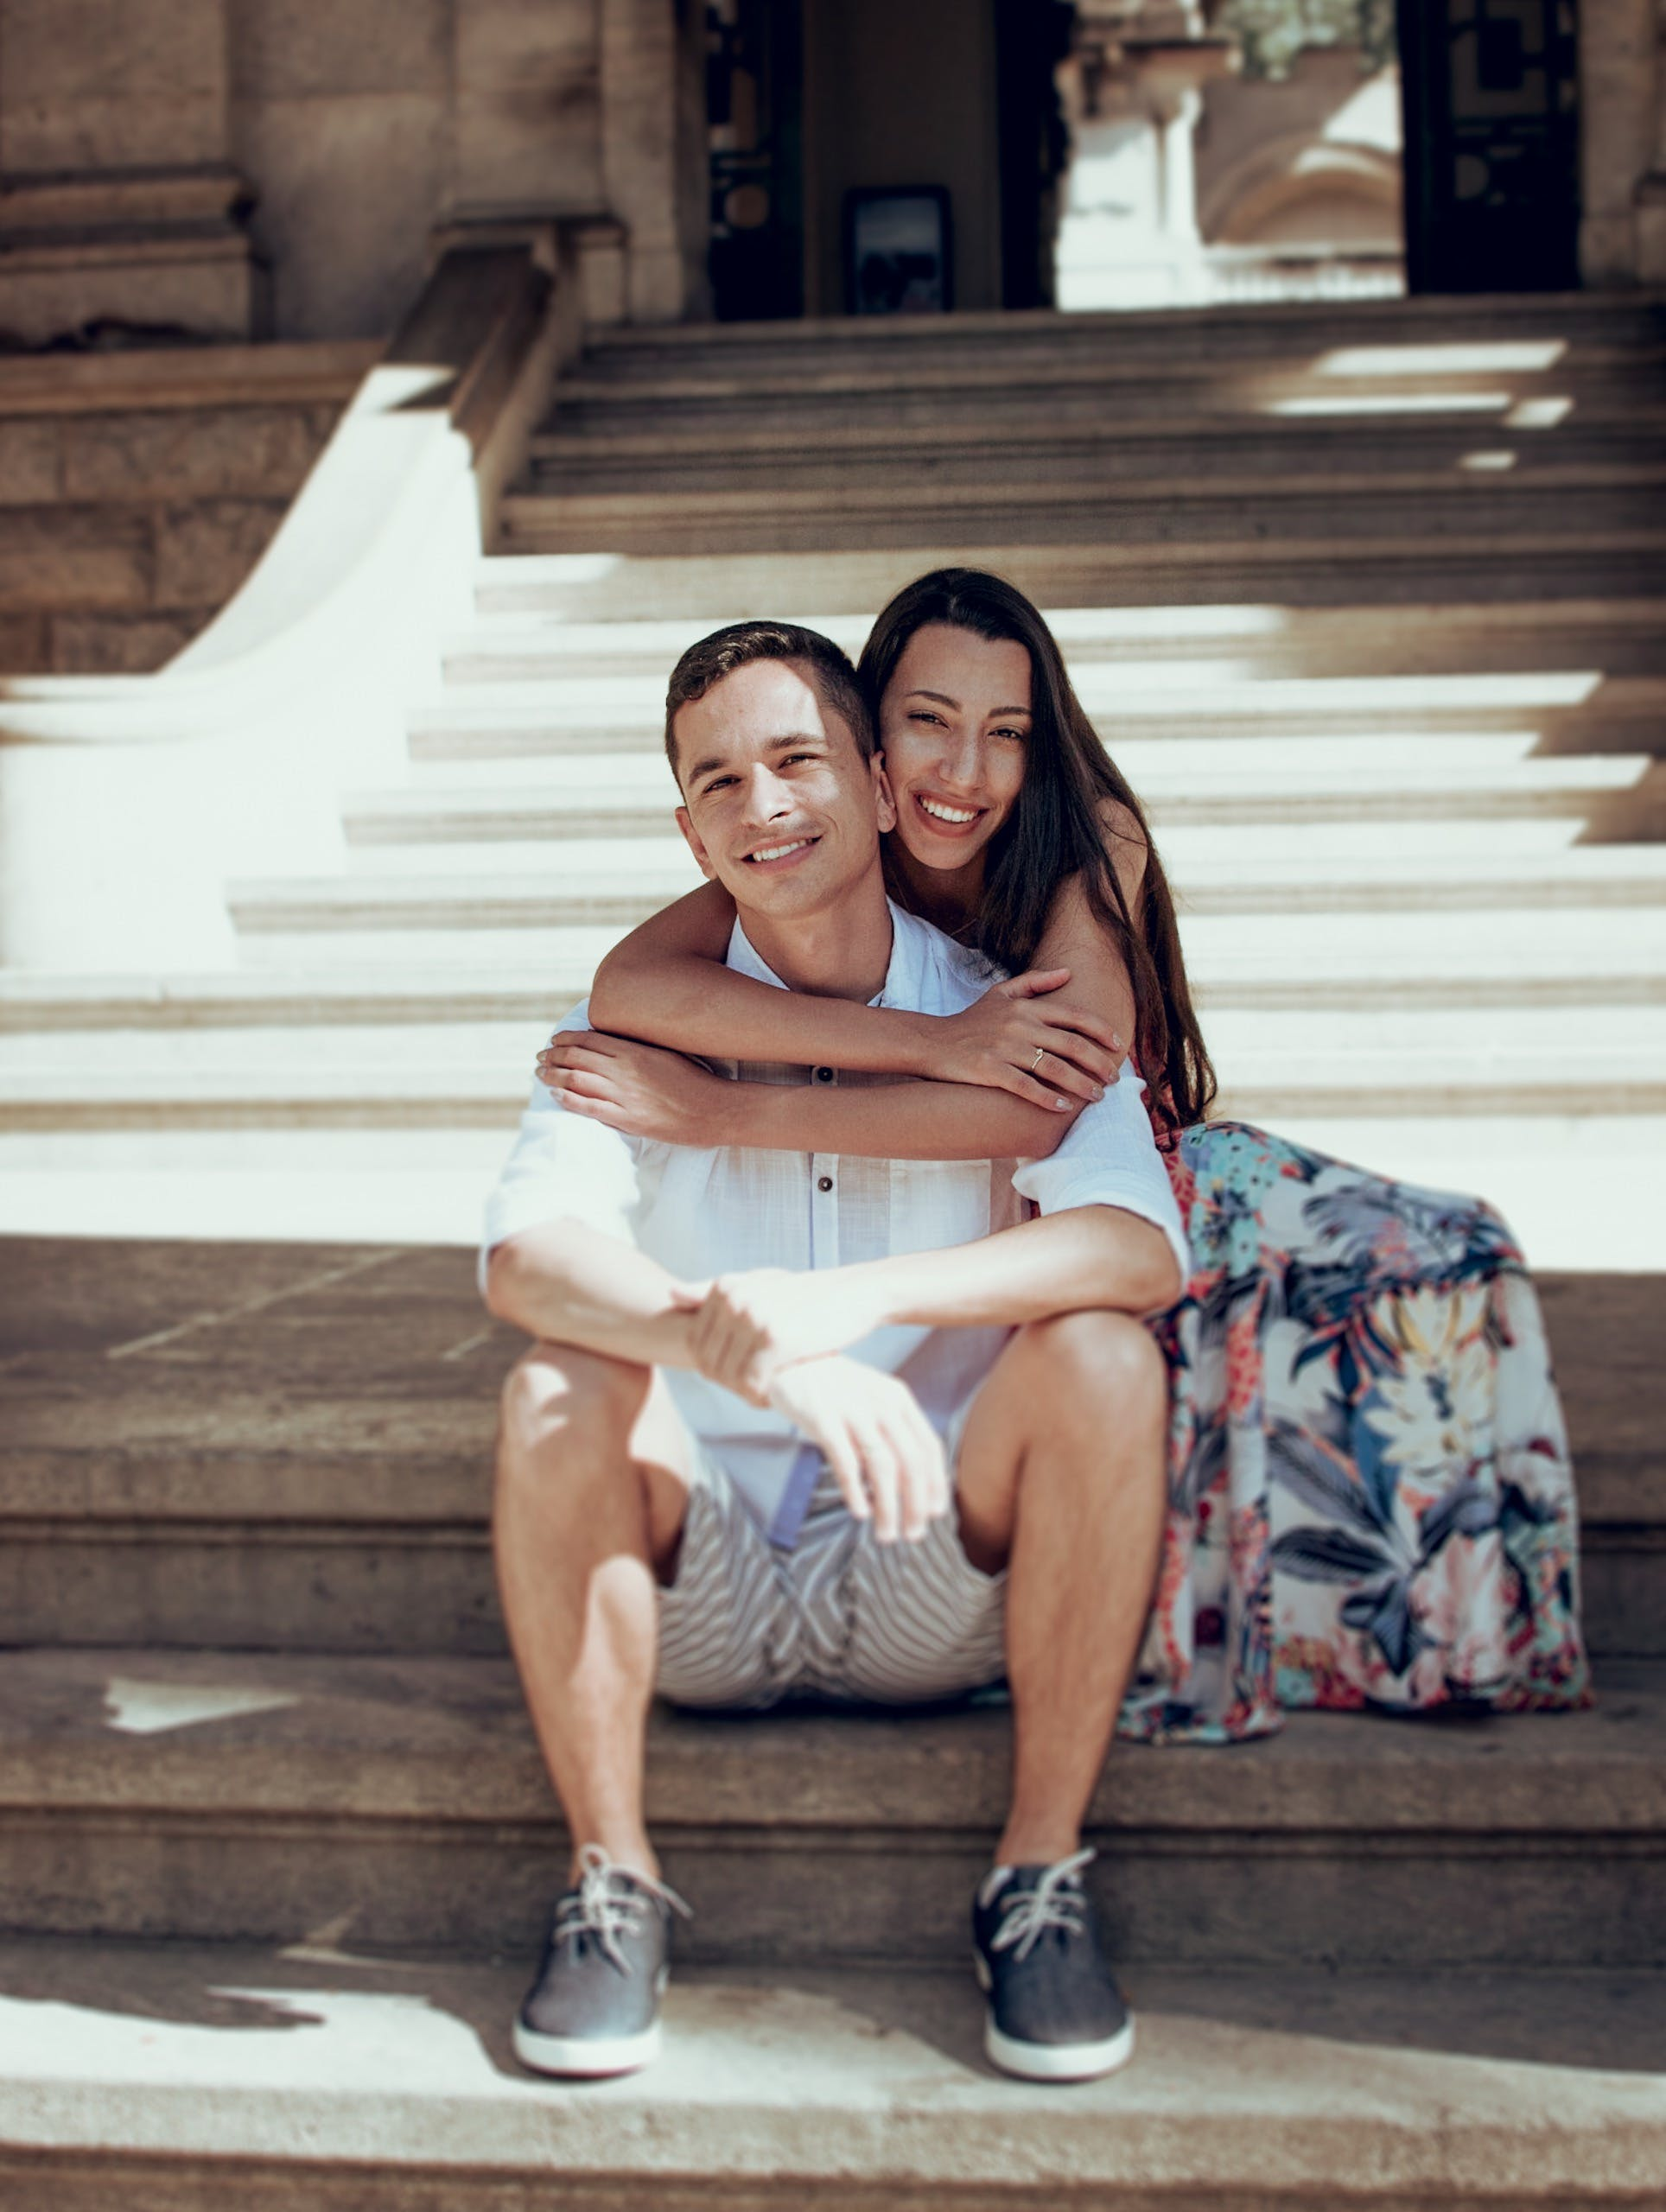 Woman Hugging Man on Stairs